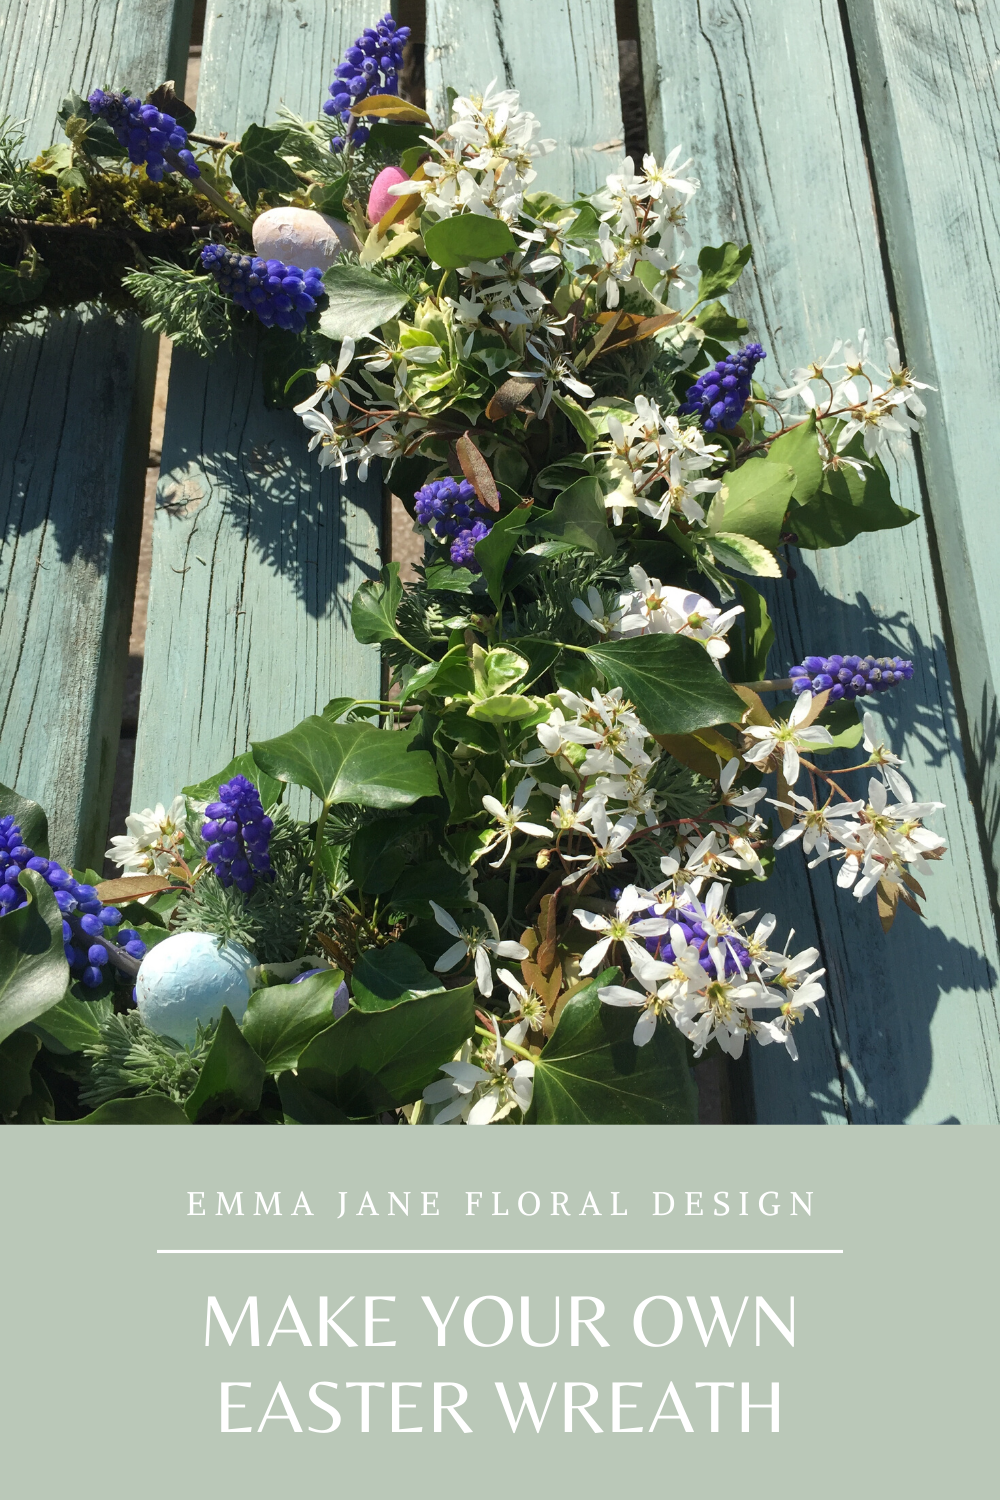 Make Your Own Easter Wreath With Emma Jane Floral Design